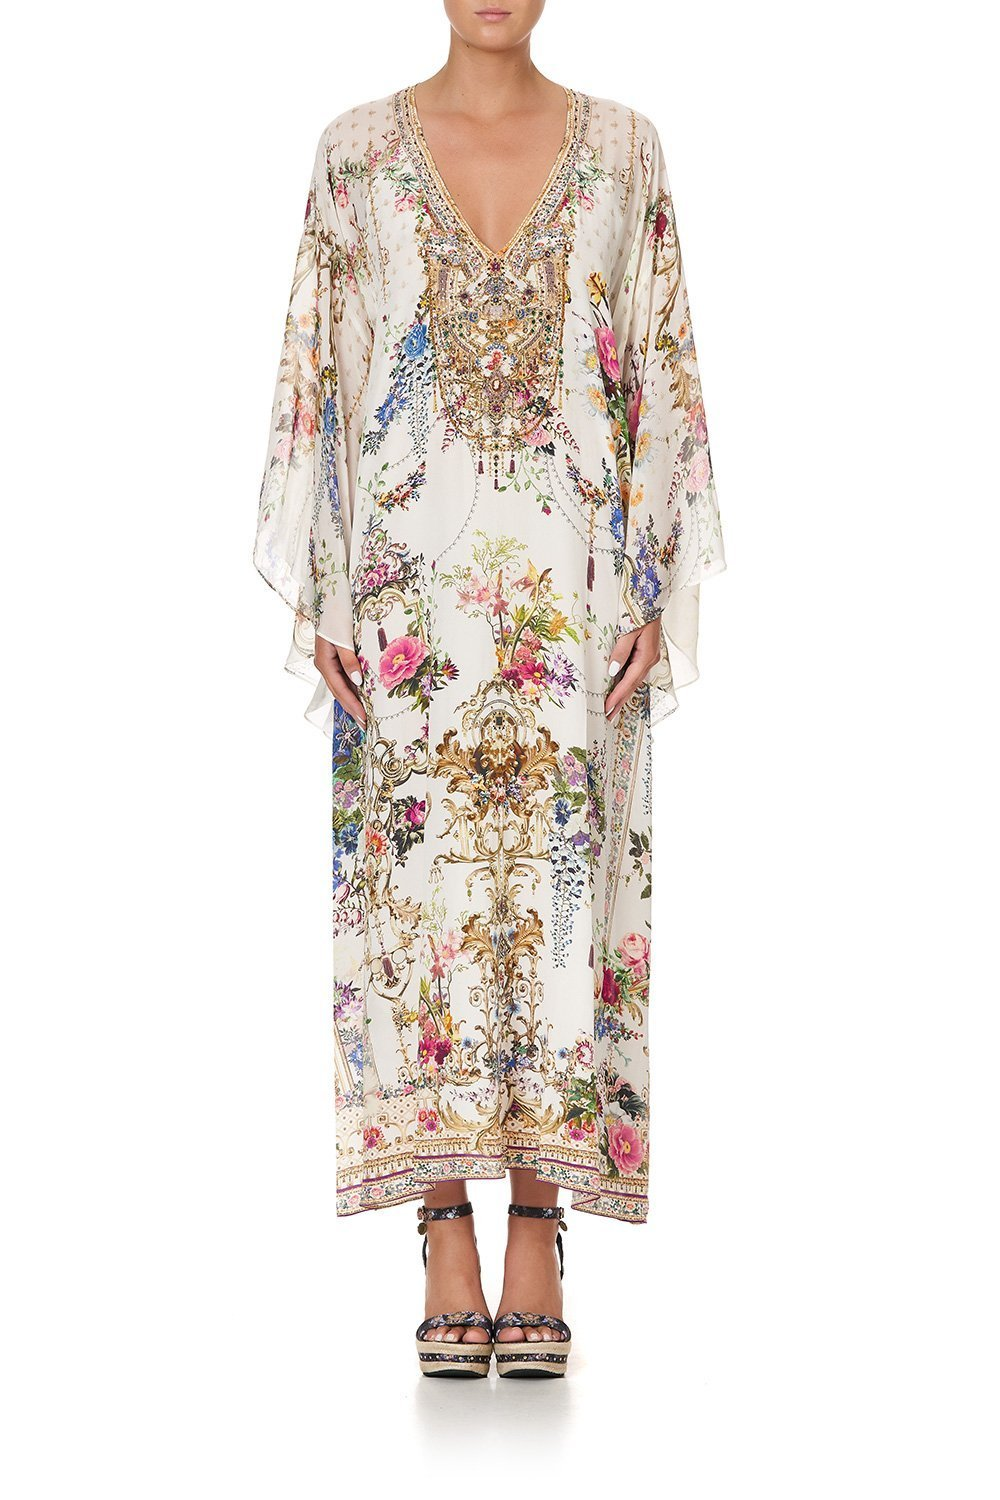 CAMILLA_00011115_BY_THE_MEADOW_LONG_RAGLAN_SLEEVE_FLARED_KAFTAN_4_1024x1024@2x